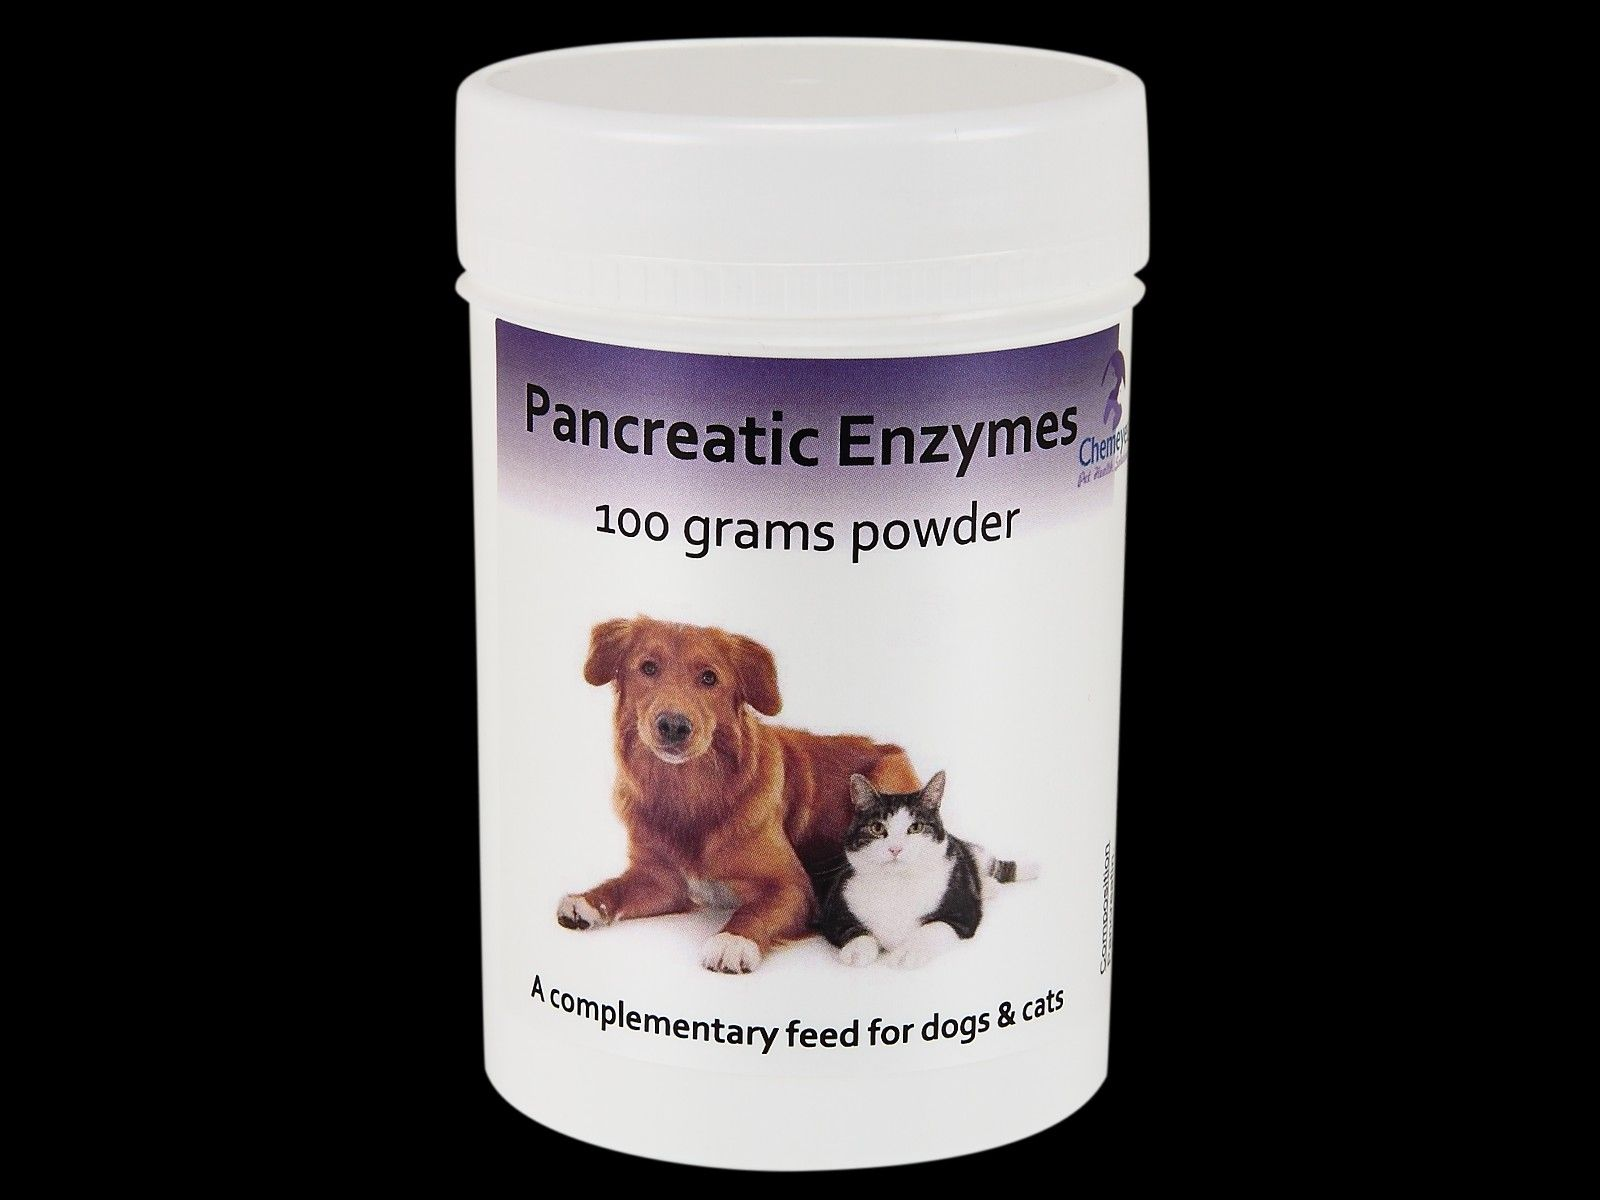 Pancreatic enzymes for dogs cats pancreatic enzyme